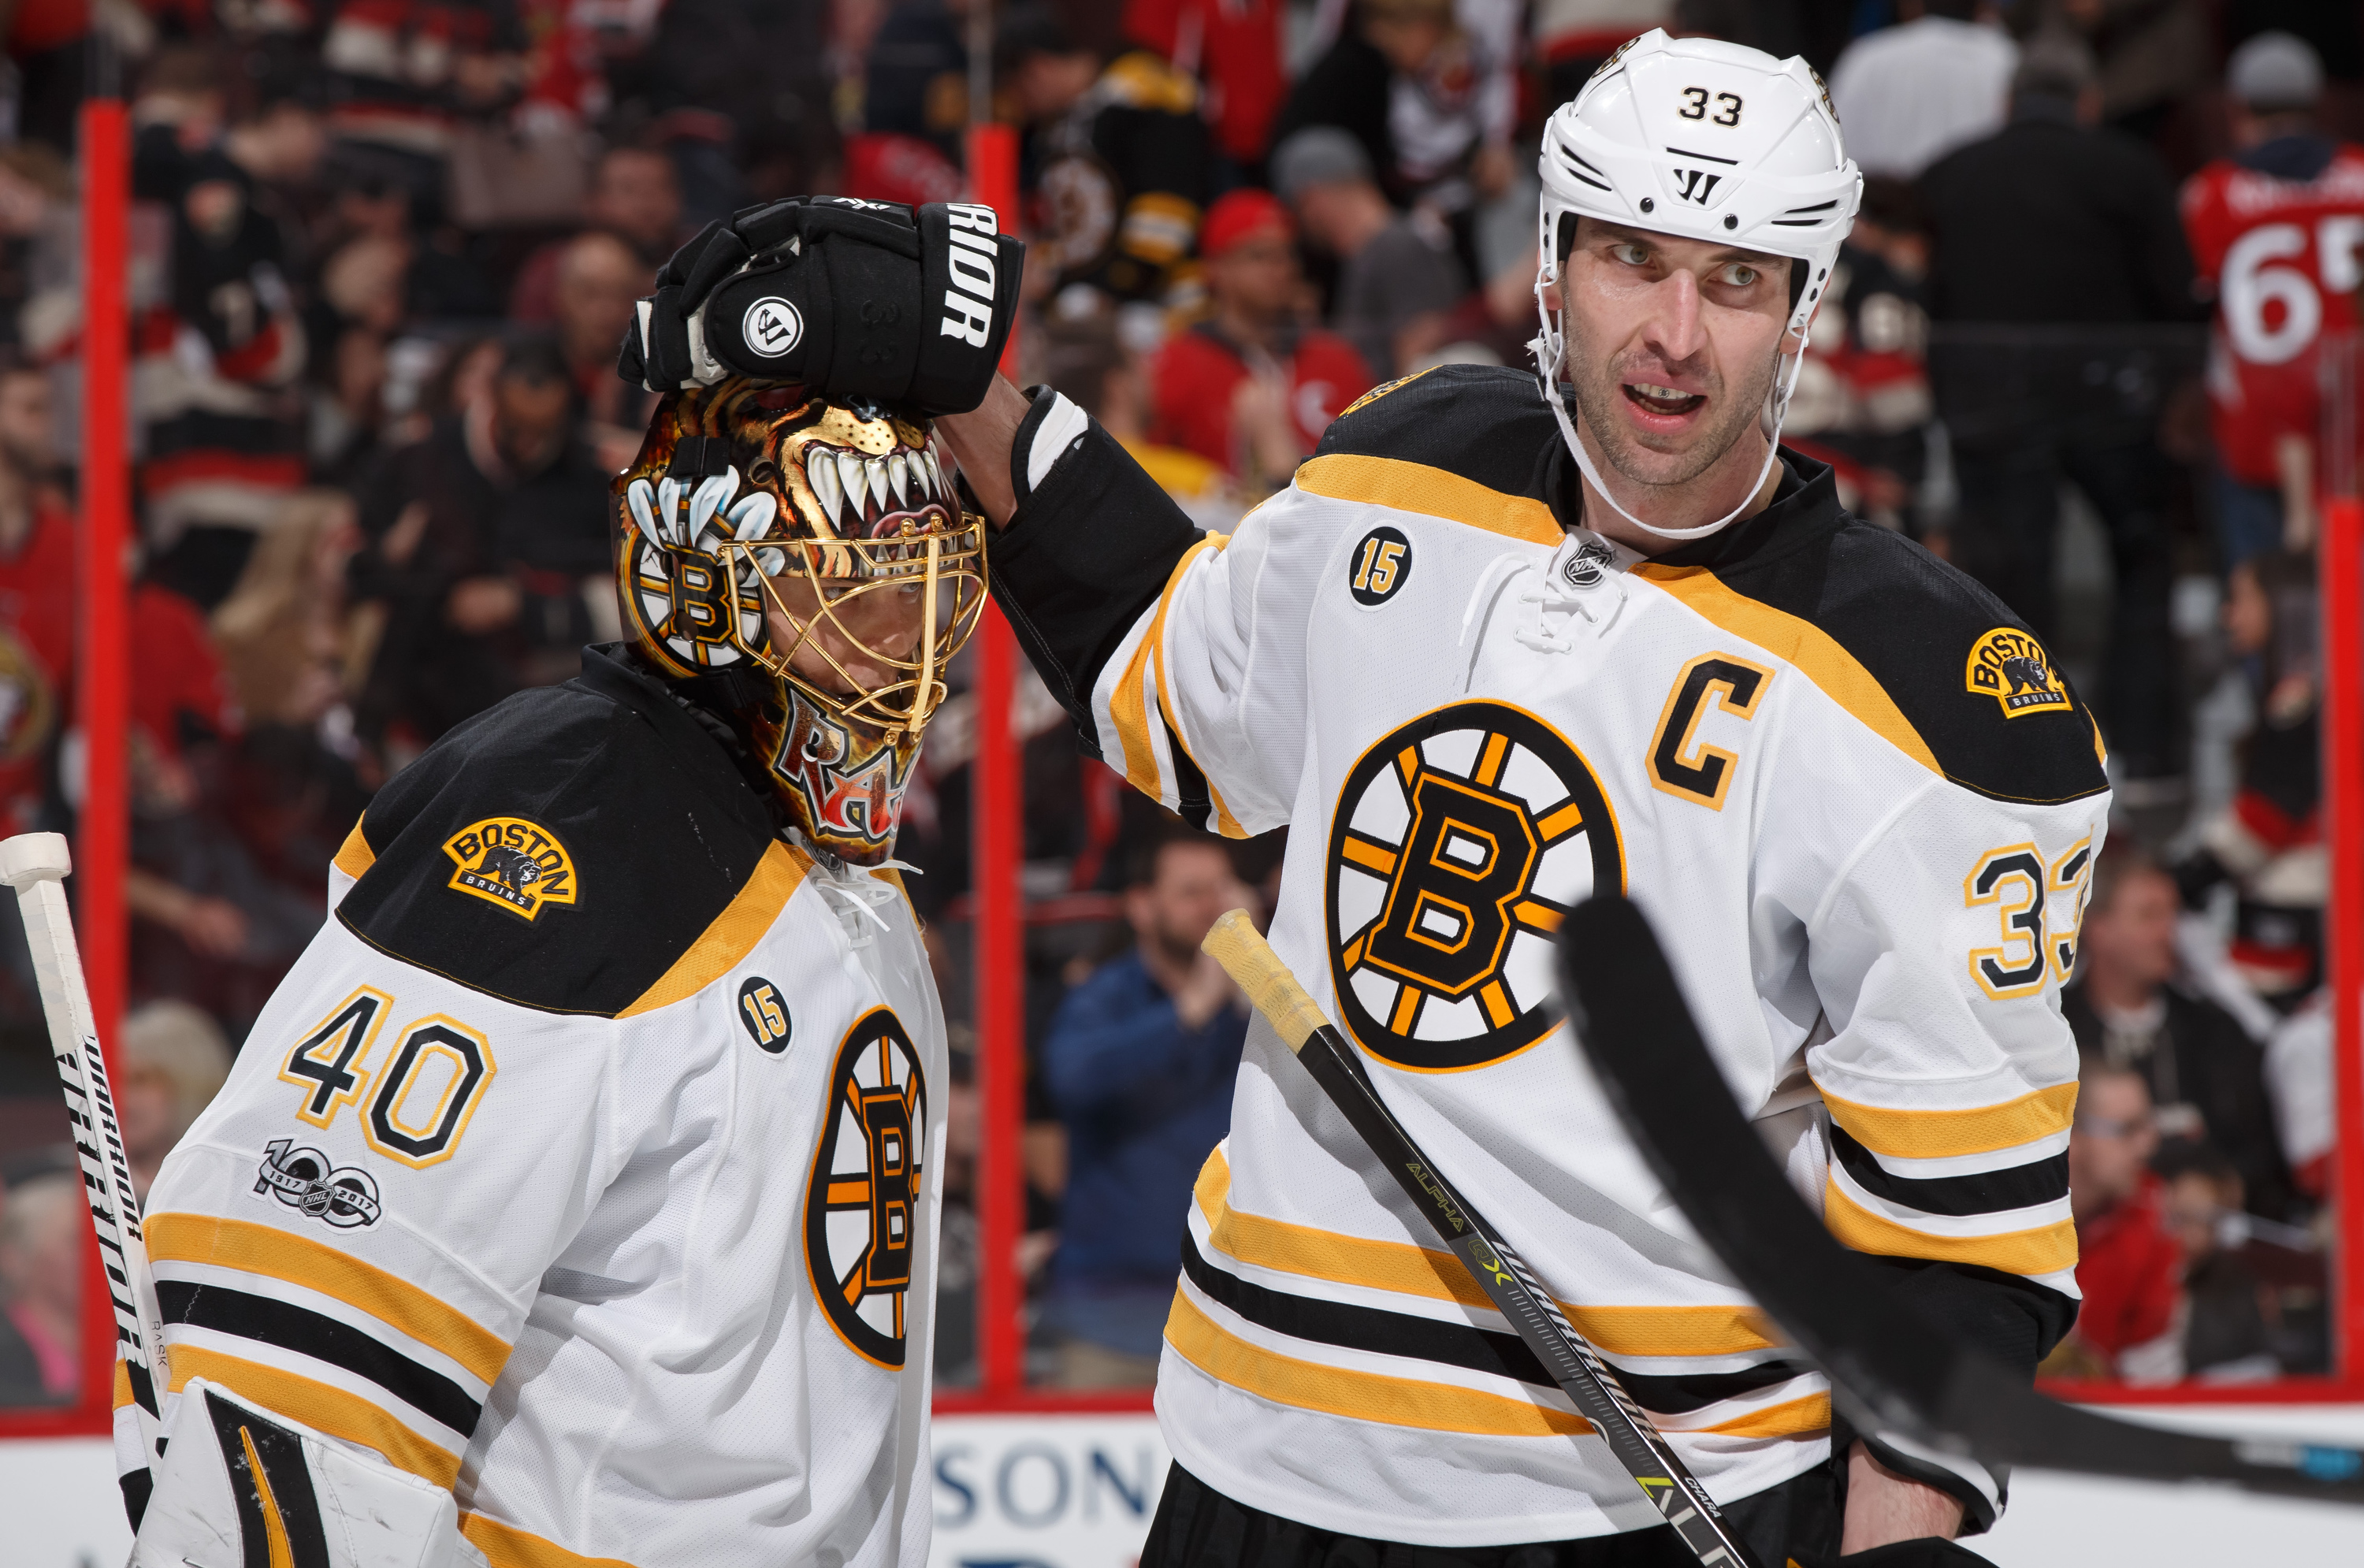 Bergeron's Status Unclear For Bruins Opener: 'We'll See What Happens'